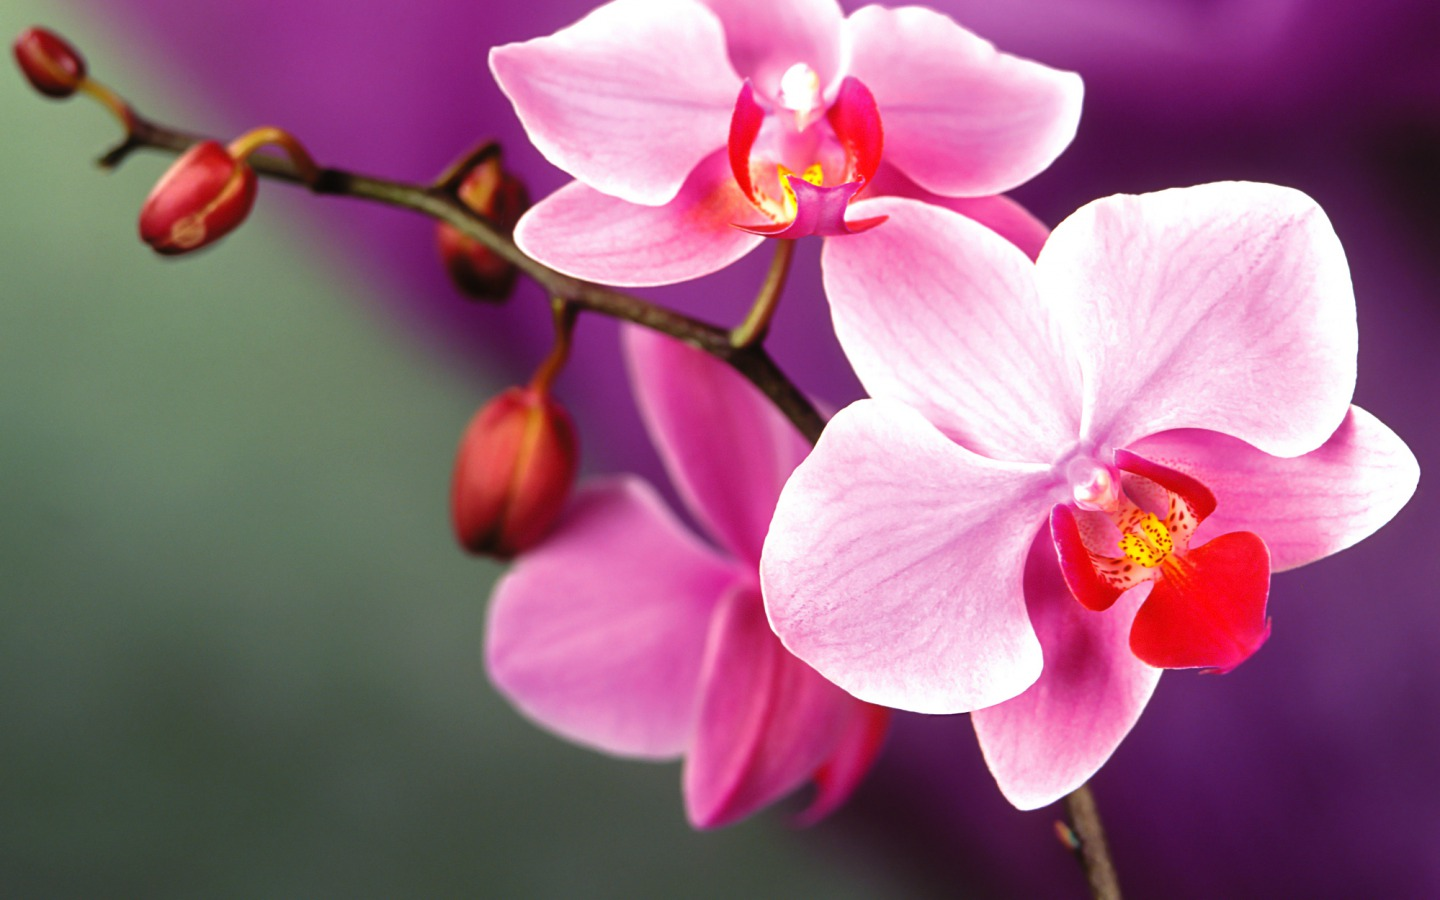 Flowers Images Orchid HD Wallpaper And Background Photos